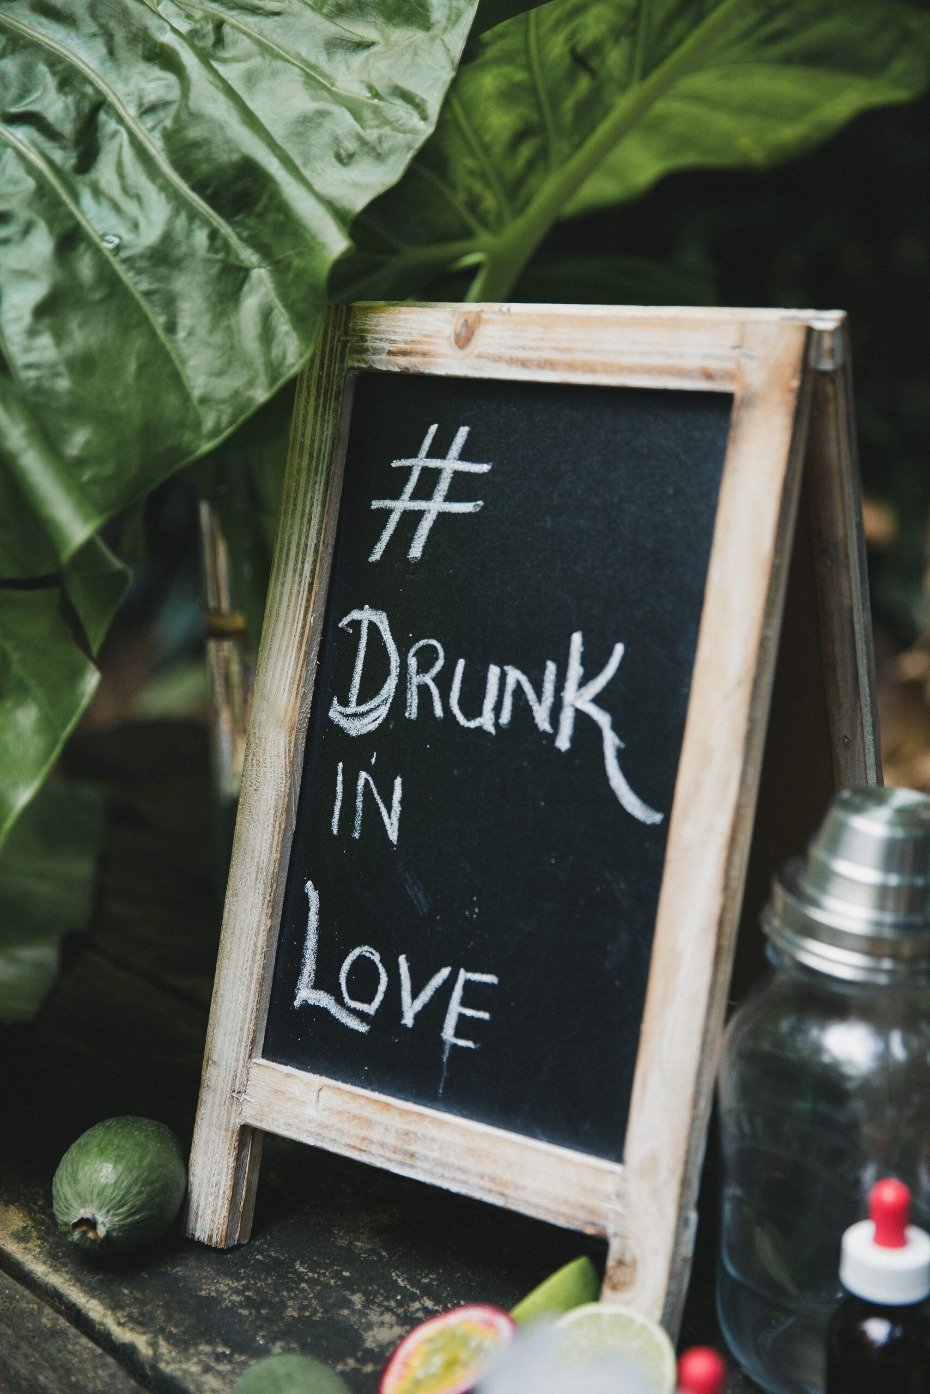 Drunk in love wedding sign